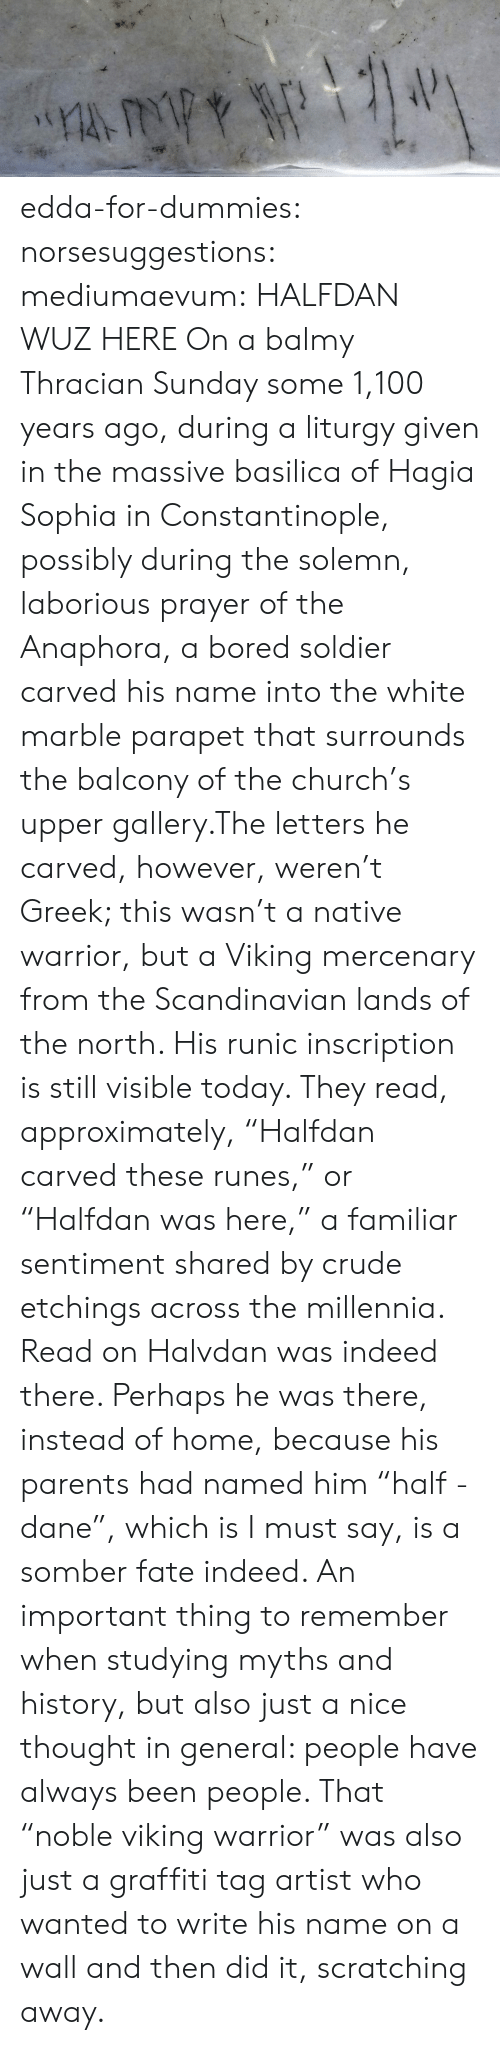 "myths: edda-for-dummies: norsesuggestions:  mediumaevum:  HALFDAN WUZ HERE On a balmy Thracian Sunday some 1,100 years ago, during a liturgy given in the massive basilica of Hagia Sophia in Constantinople, possibly during the solemn, laborious prayer of the Anaphora, a bored soldier carved his name into the white marble parapet that surrounds the balcony of the church's upper gallery.The letters he carved, however, weren't Greek; this wasn't a native warrior, but a Viking mercenary from the Scandinavian lands of the north. His runic inscription is still visible today. They read, approximately, ""Halfdan carved these runes,"" or ""Halfdan was here,"" a familiar sentiment shared by crude etchings across the millennia. Read on  Halvdan was indeed there. Perhaps he was there, instead of home, because his parents had named him ""half - dane"", which is I must say, is a somber fate indeed.   An important thing to remember when studying myths and history, but also just a nice thought in general: people have always been people. That ""noble viking warrior"" was also just a graffiti tag artist who wanted to write his name on a wall and then did it, scratching away."